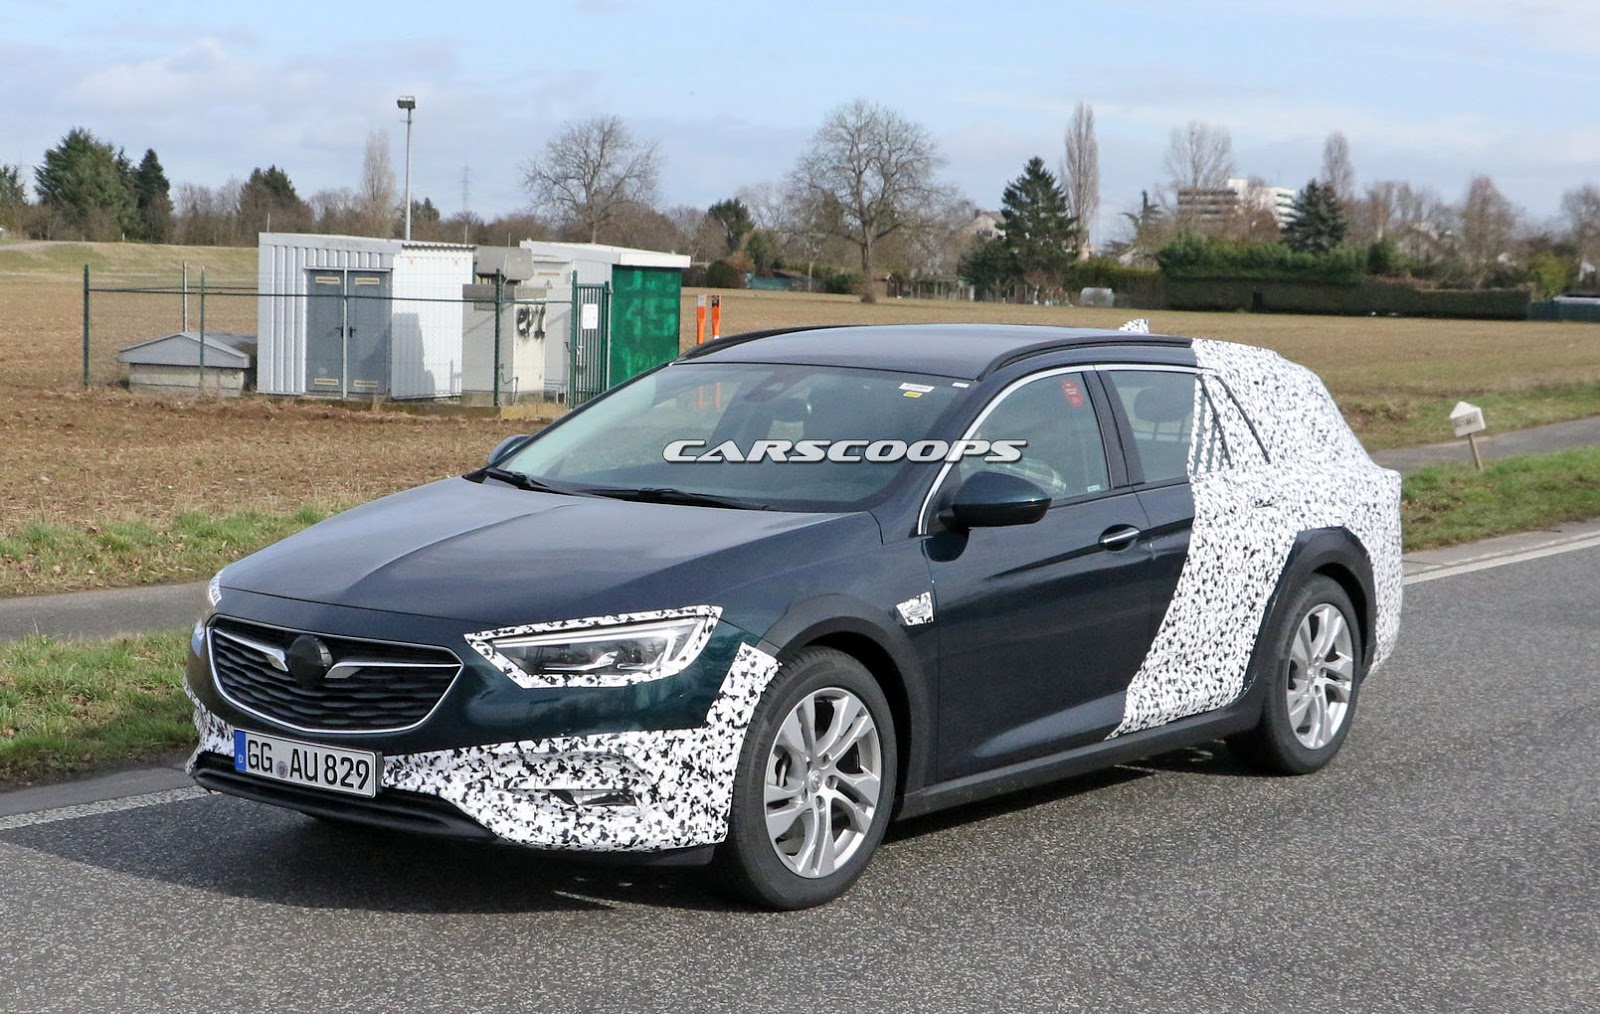 opel insignia country tourer getting ready to lure customers away from suvs carscoops. Black Bedroom Furniture Sets. Home Design Ideas